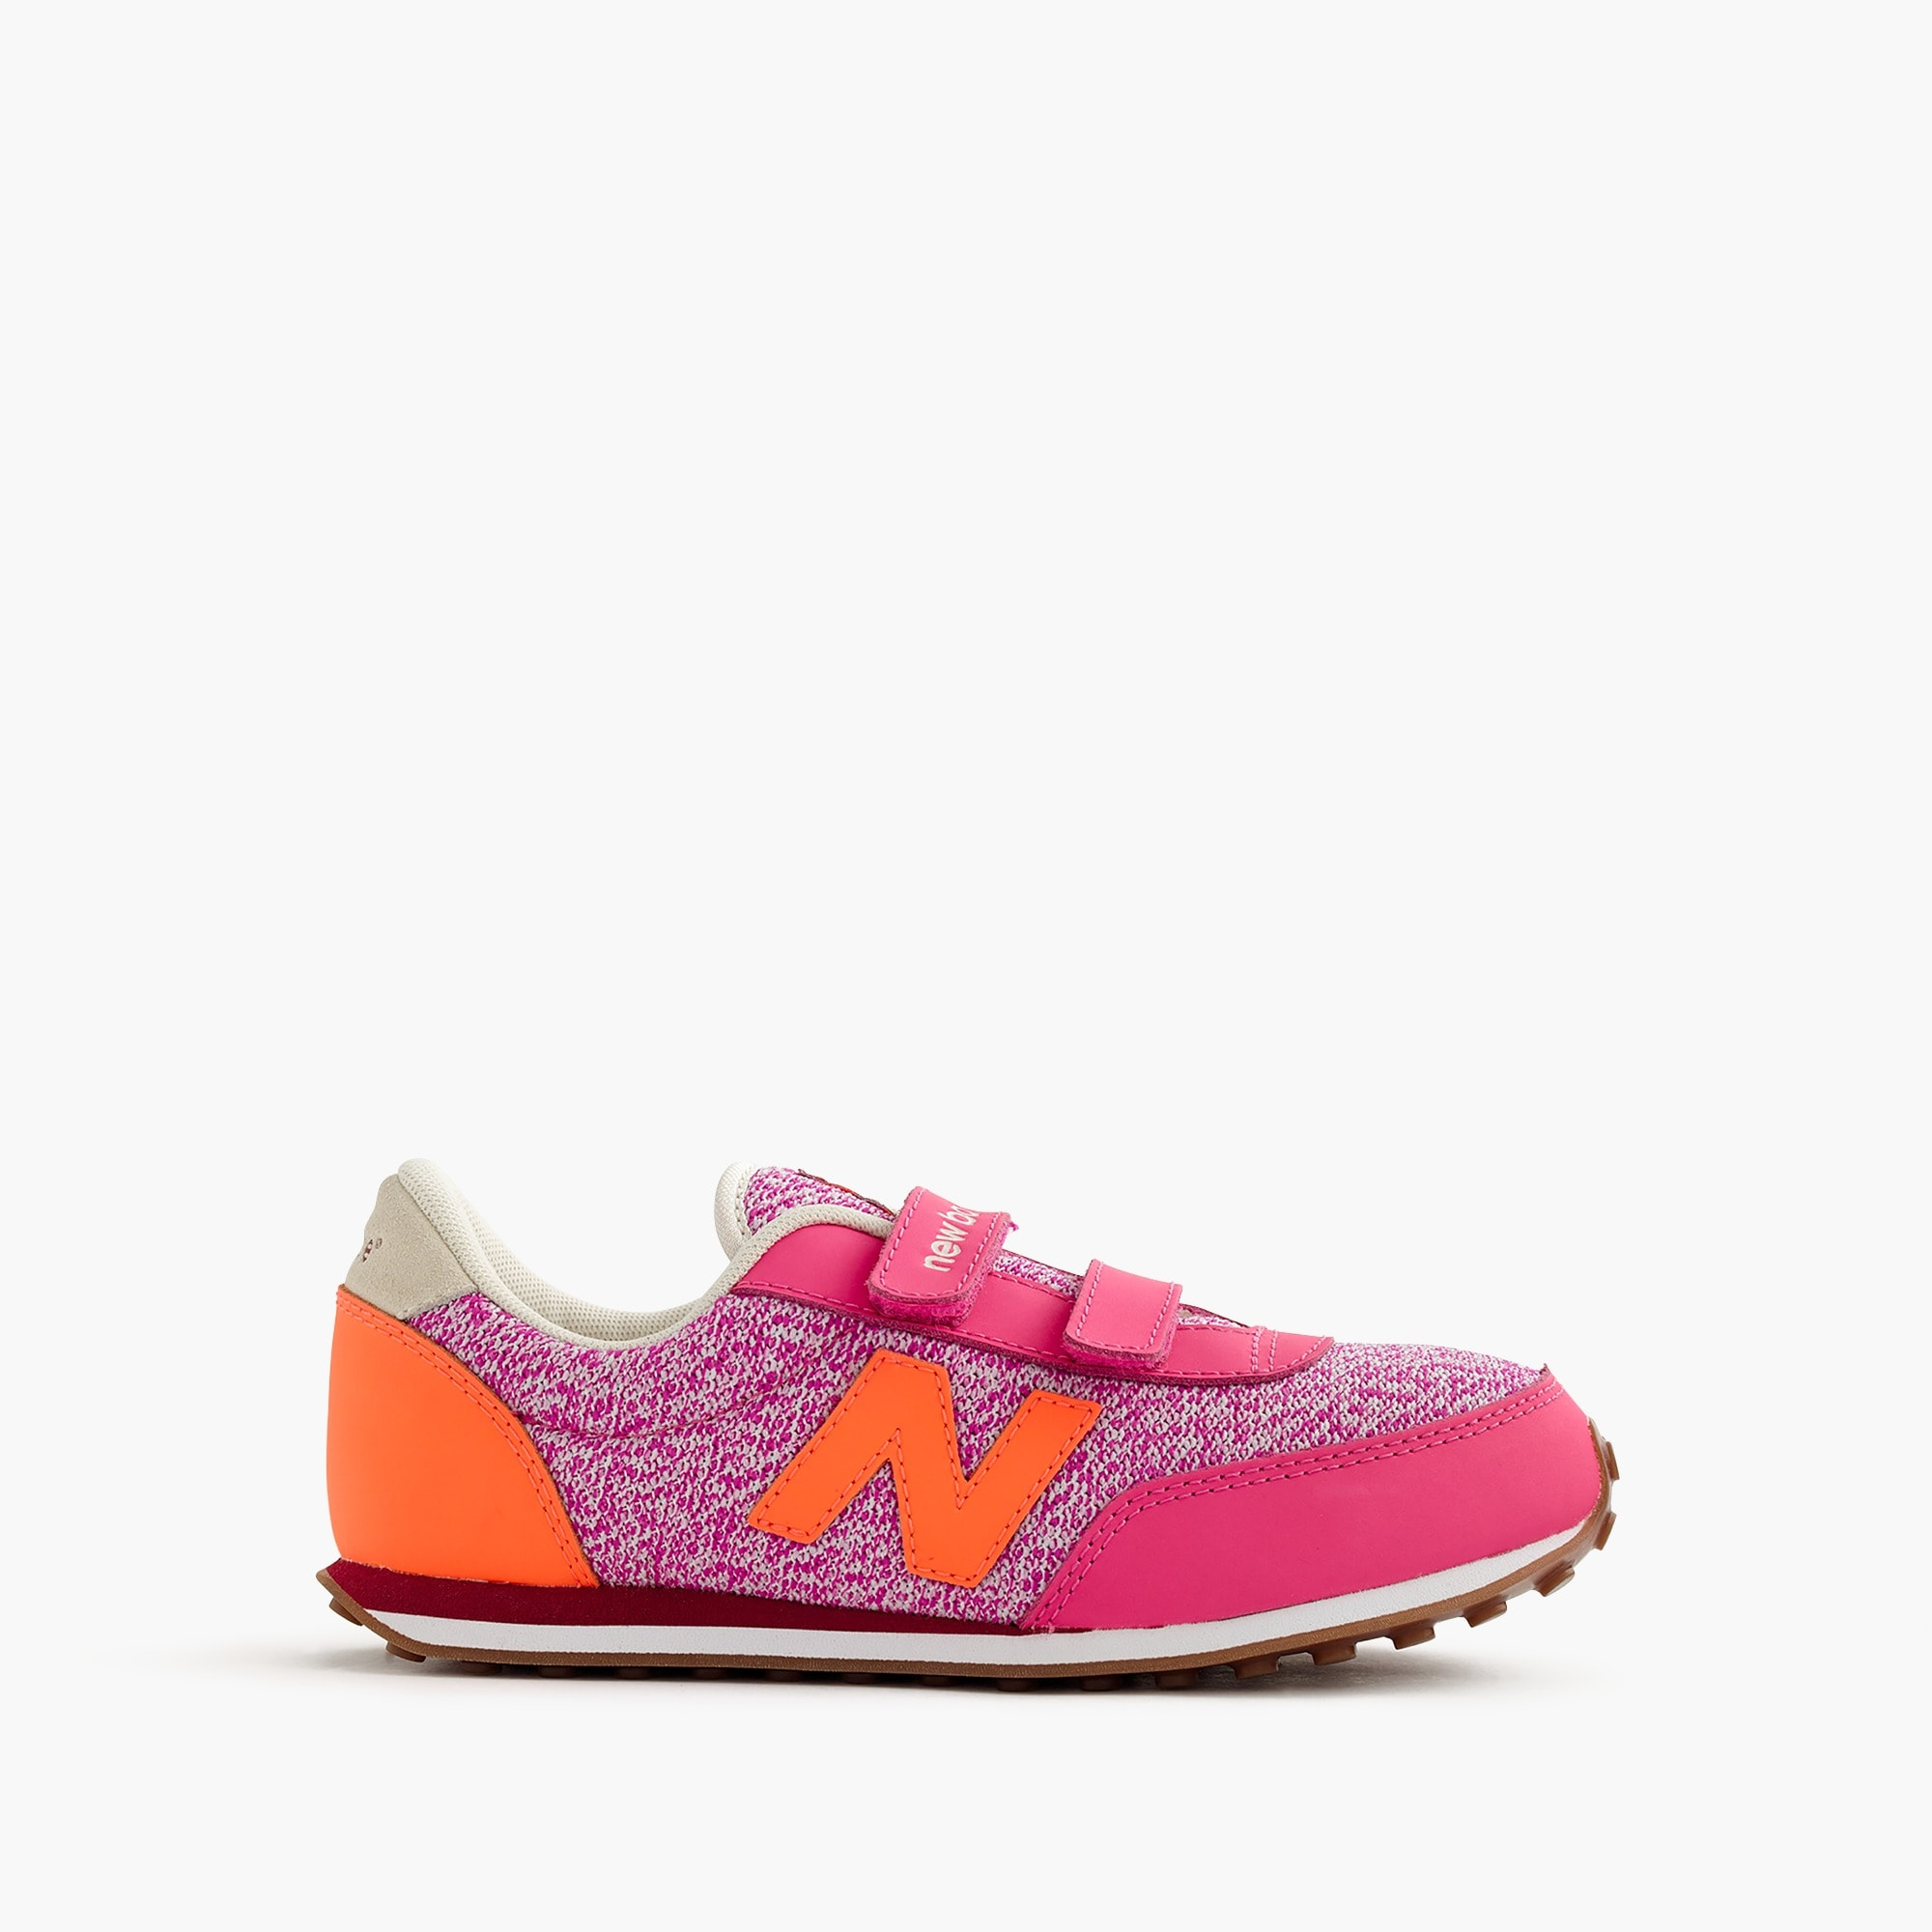 Kids' New Balance for crewcuts 410 velcro sneakers girl j.crew in good company c